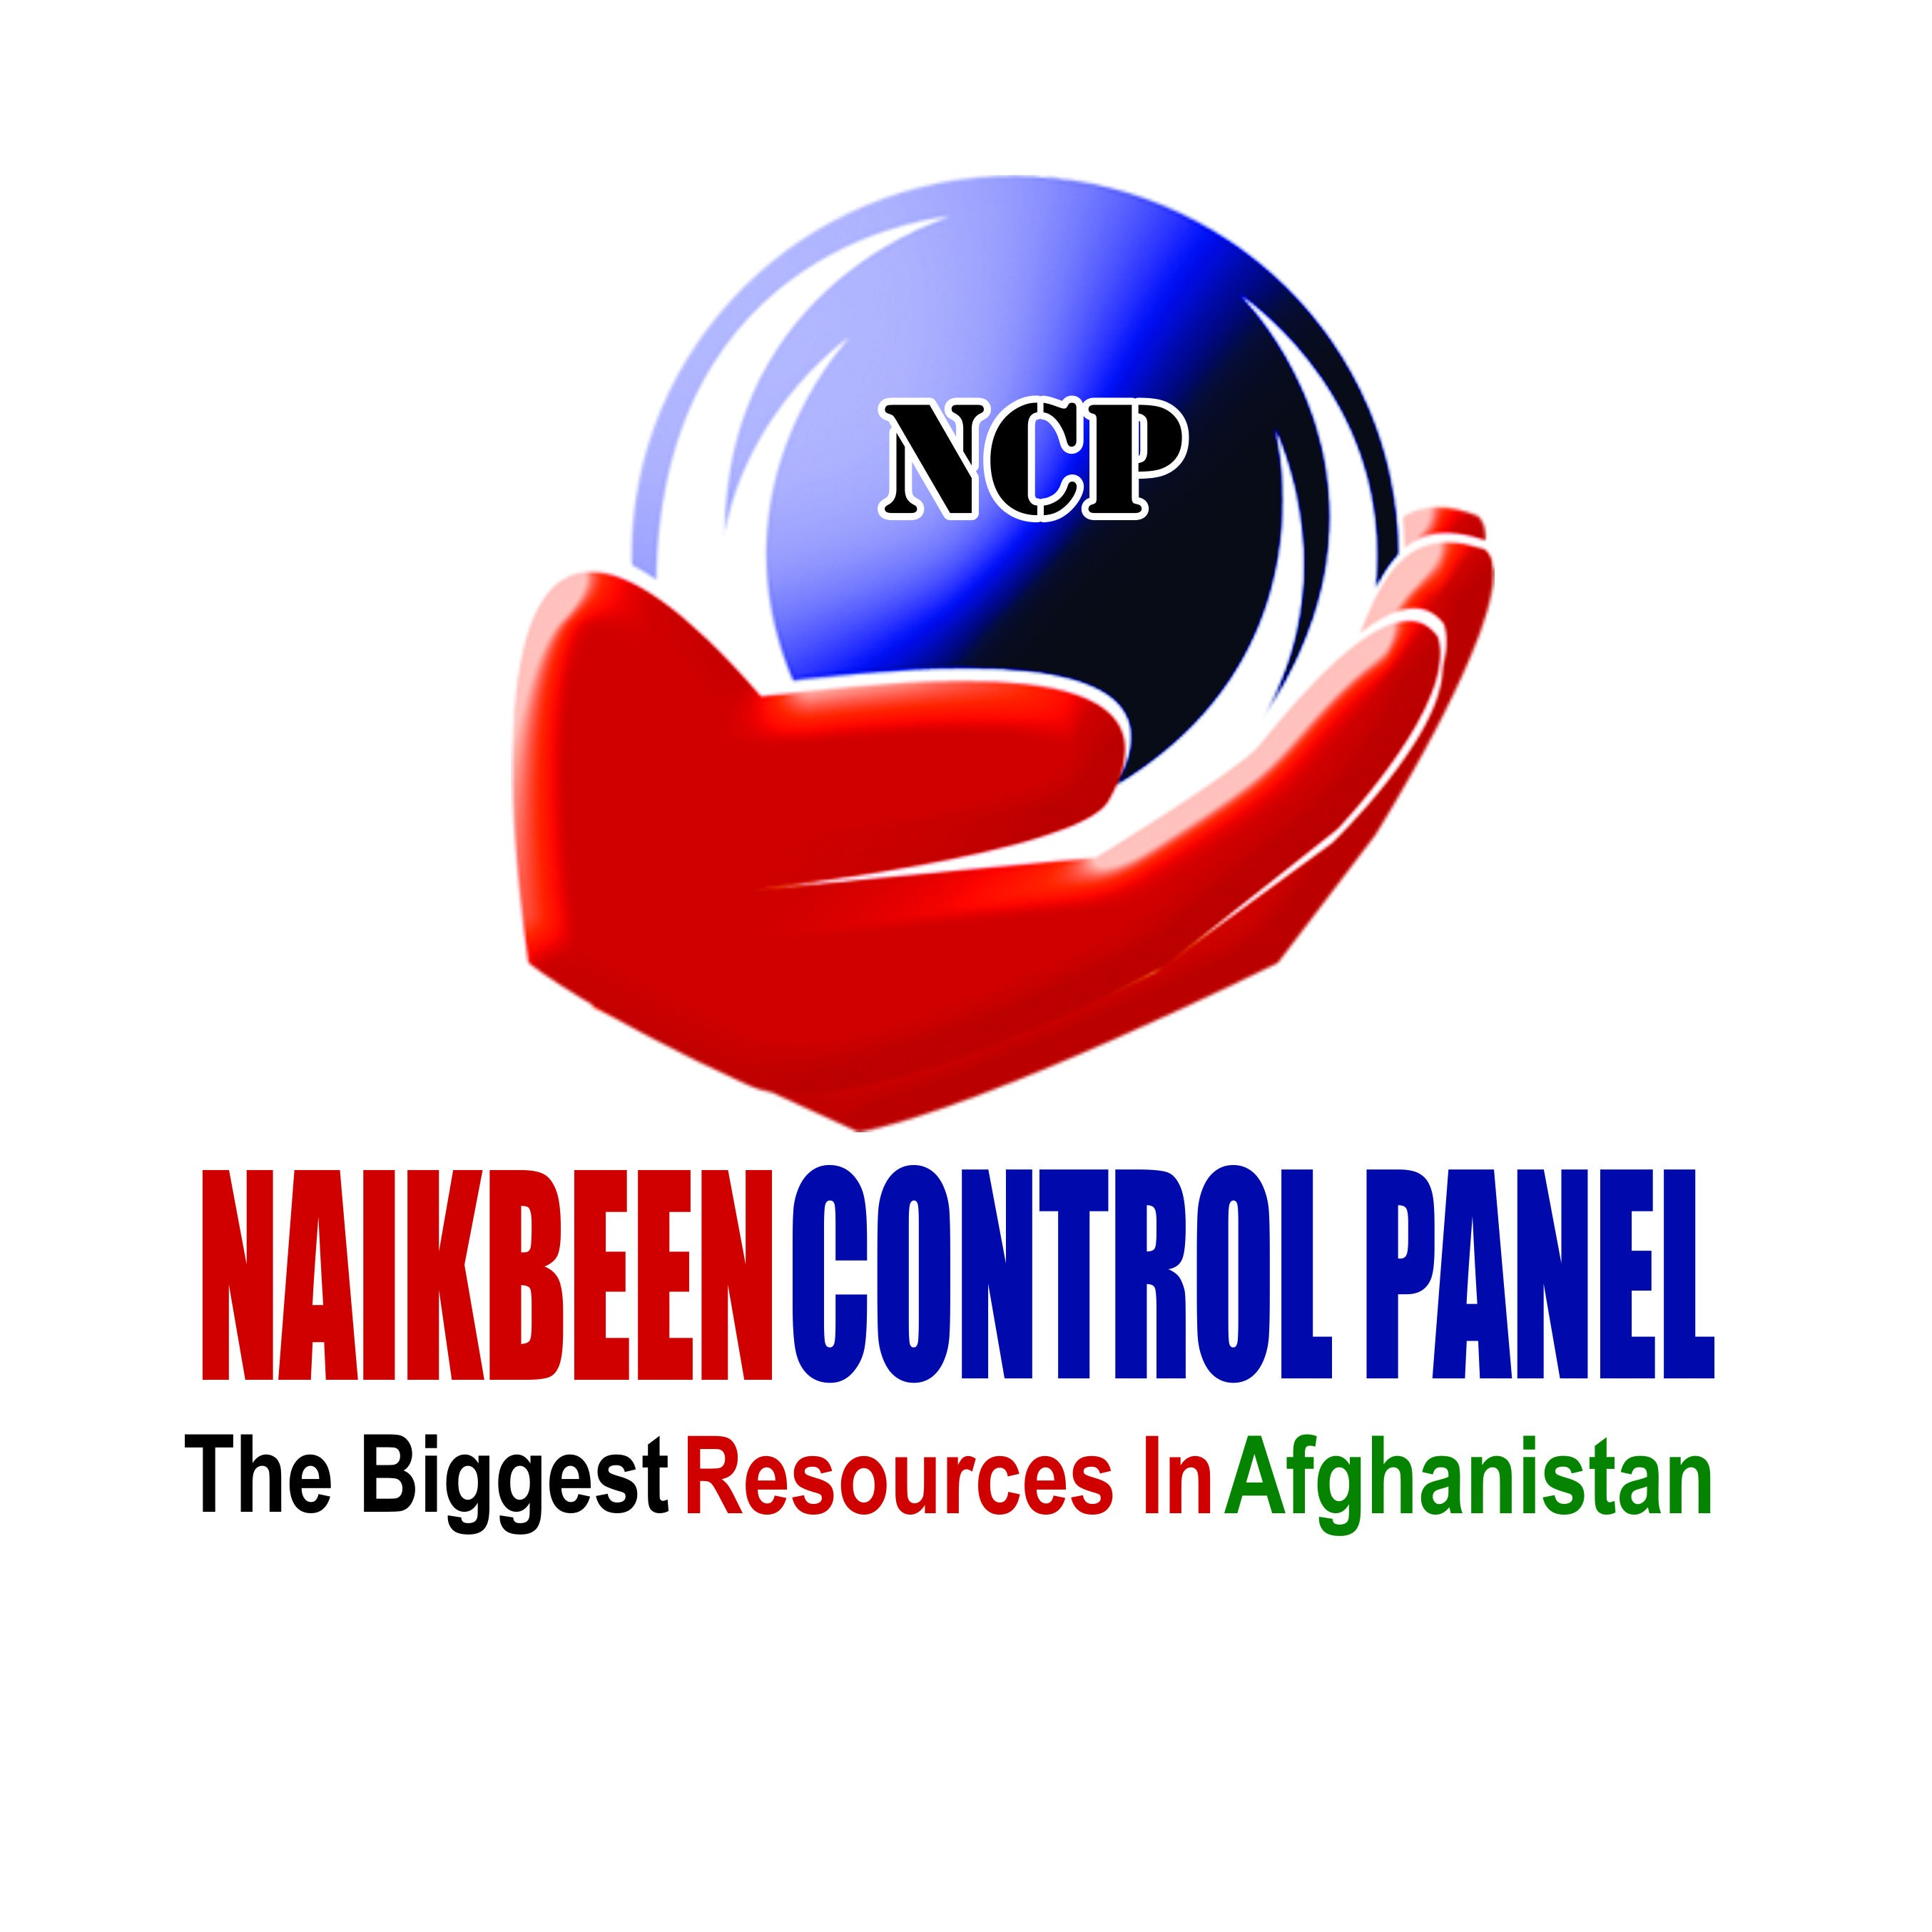 Naikbeen Control Panel